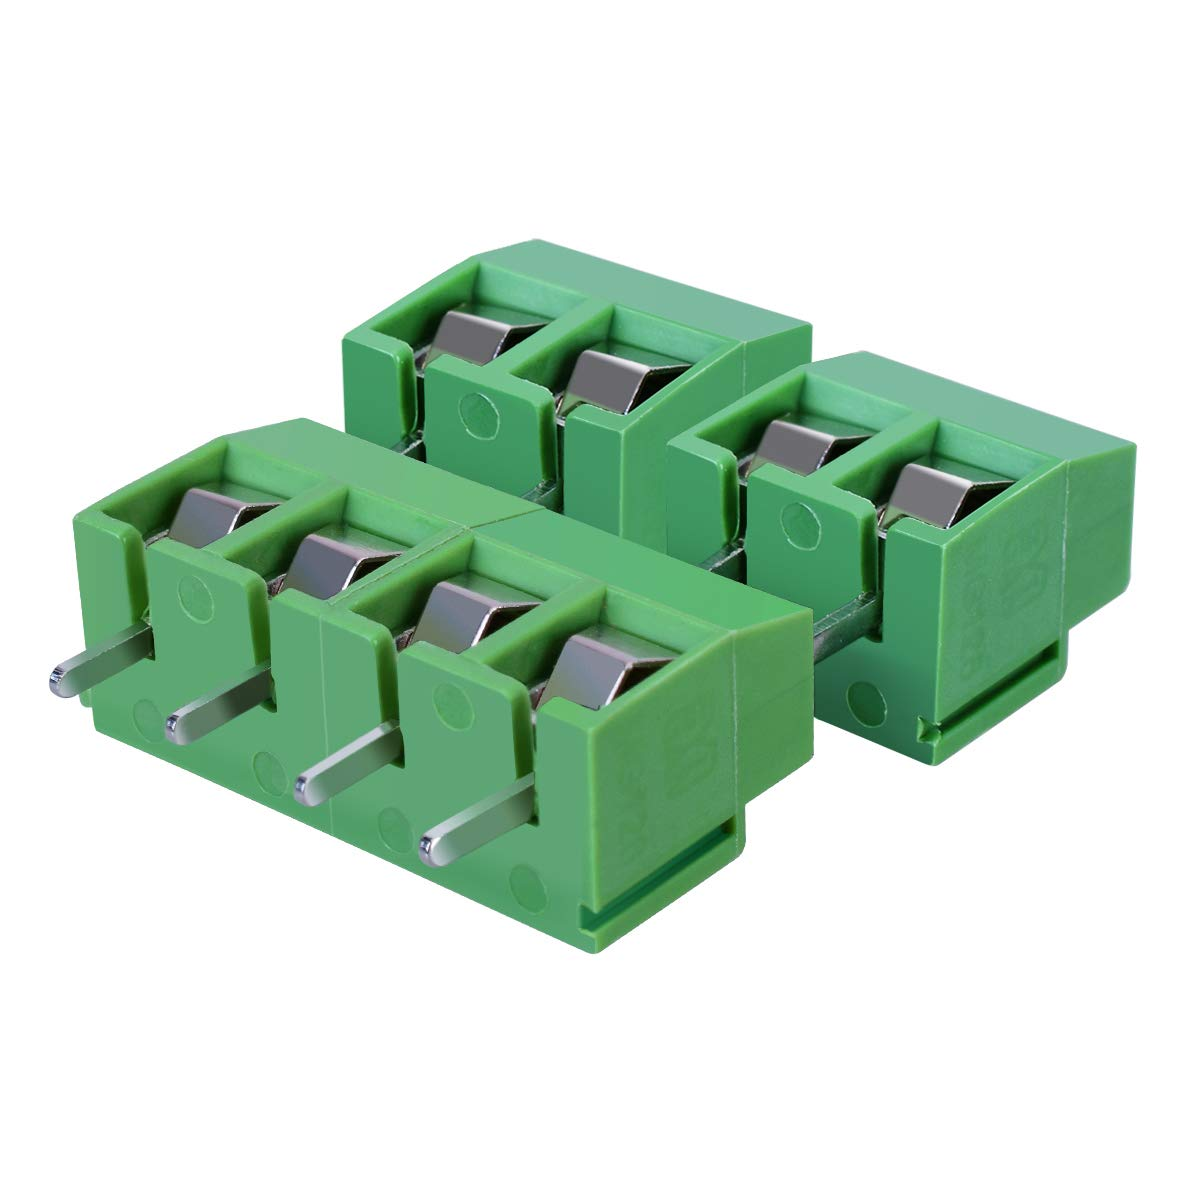 TankerStreet 50PCS PCB 2 Pins Mount Screw Terminal Block Connector 5mm Pitch 300V 10A Green Assortment Kit for Prototype Breadboards Protoshield Control Cabinets Junction Boxes AHGRD014064